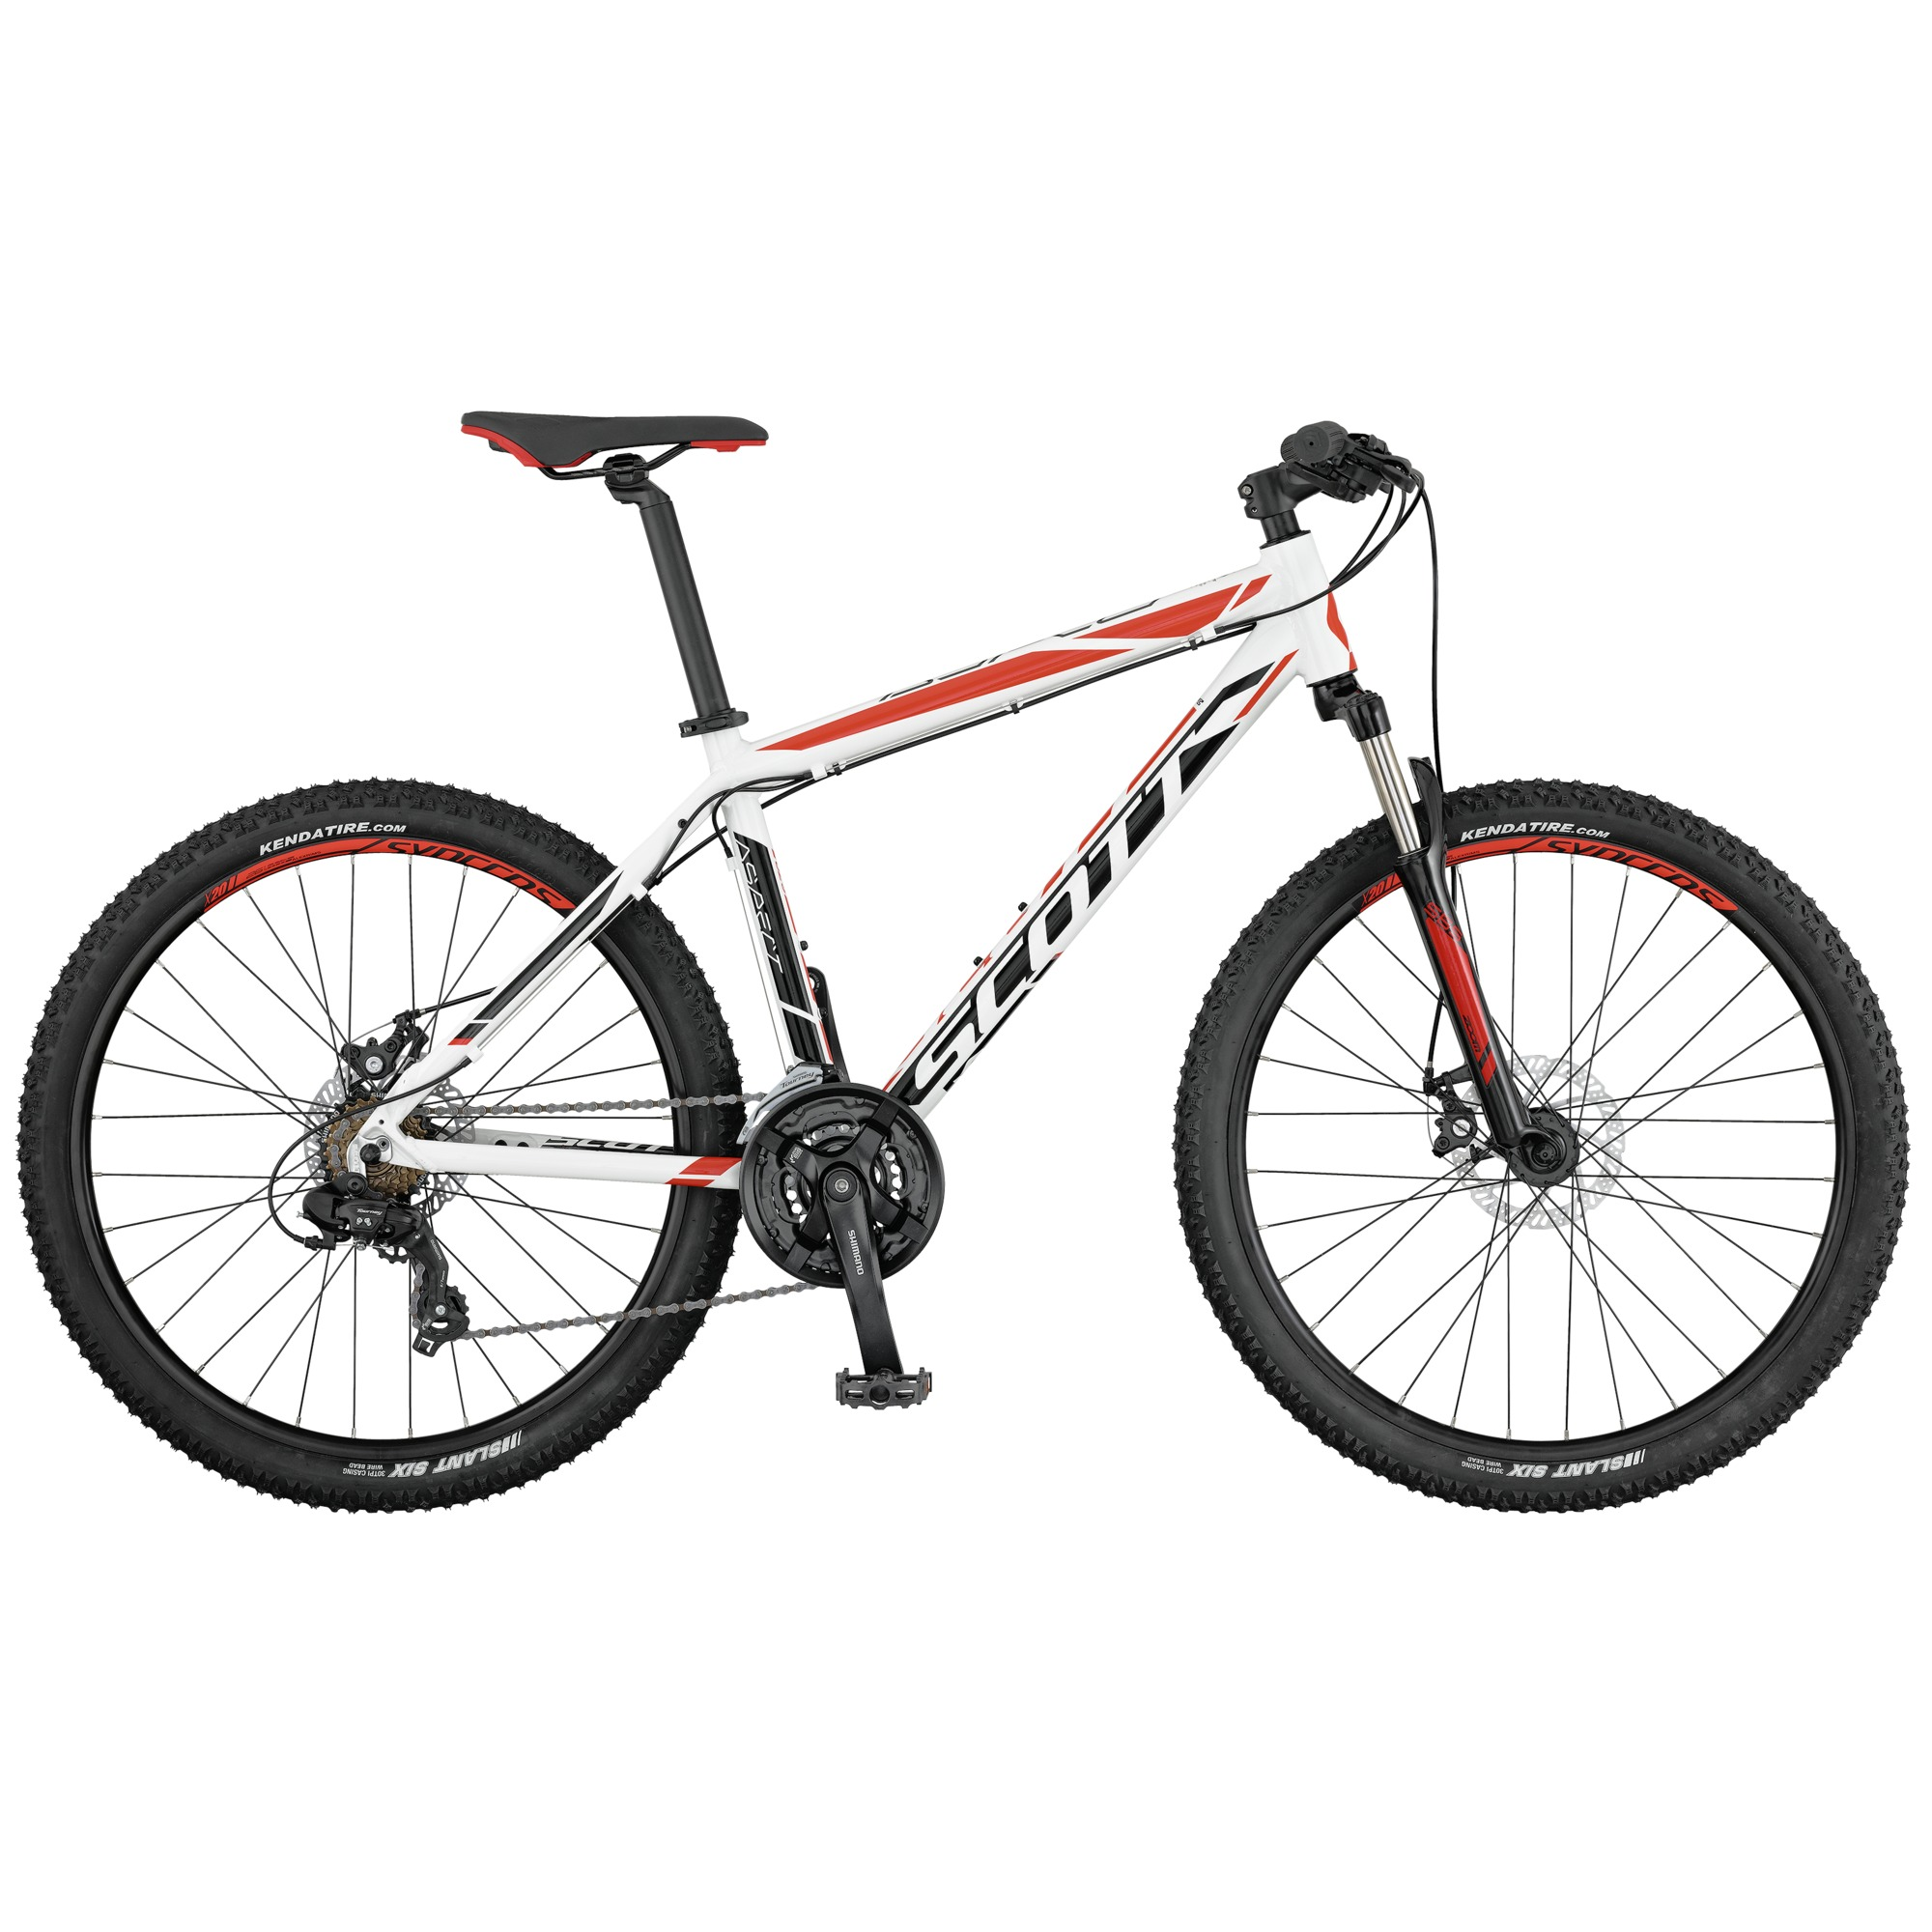 SCOTT Aspect 670 Bike